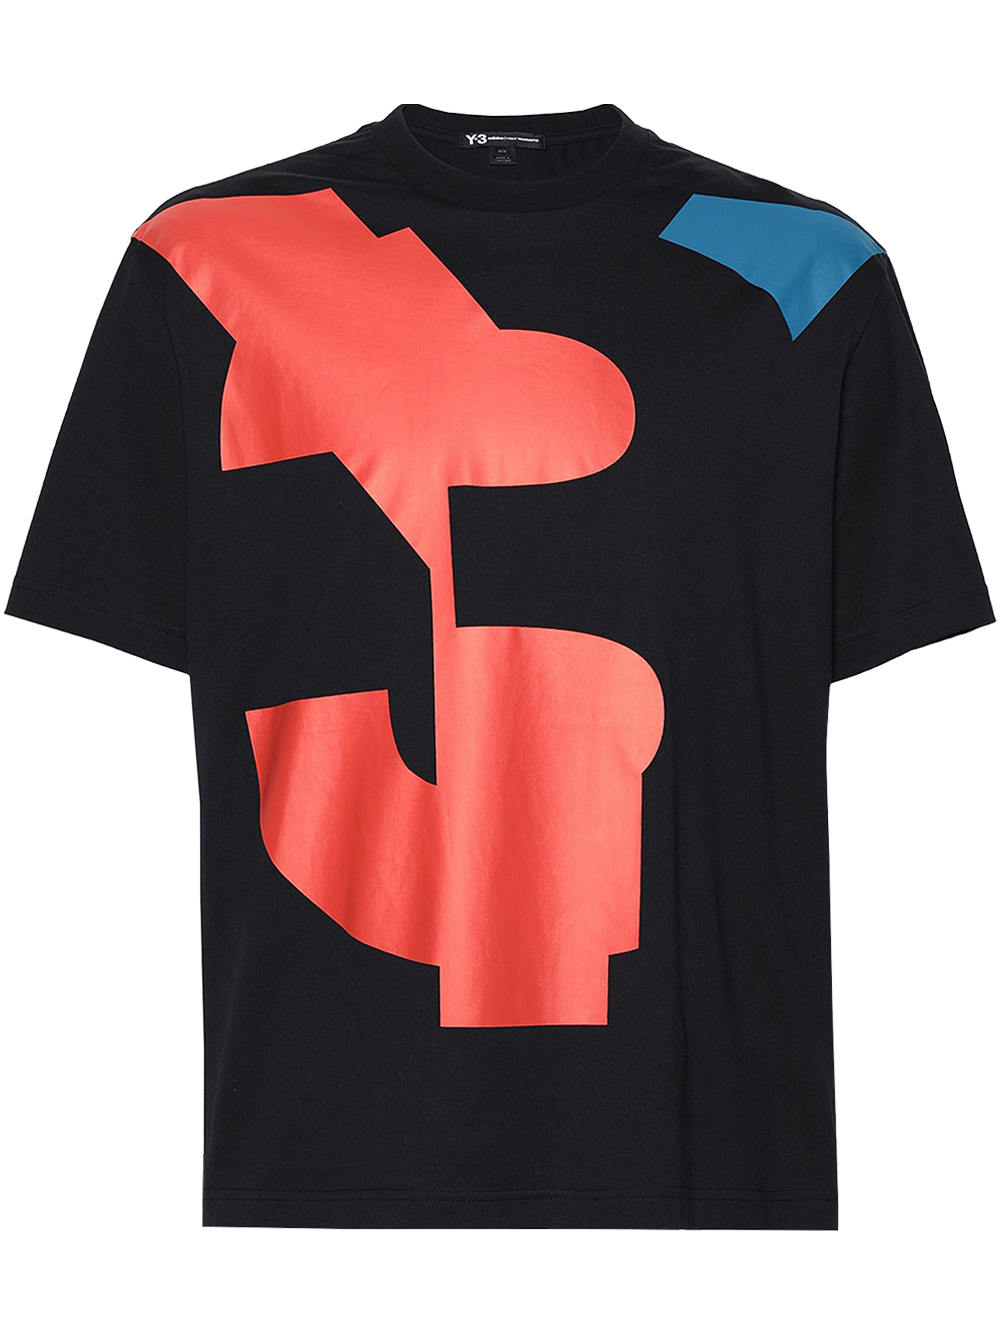 Y-3 FJ0332 U VARSITY SS TEE BLACK/ORANGE